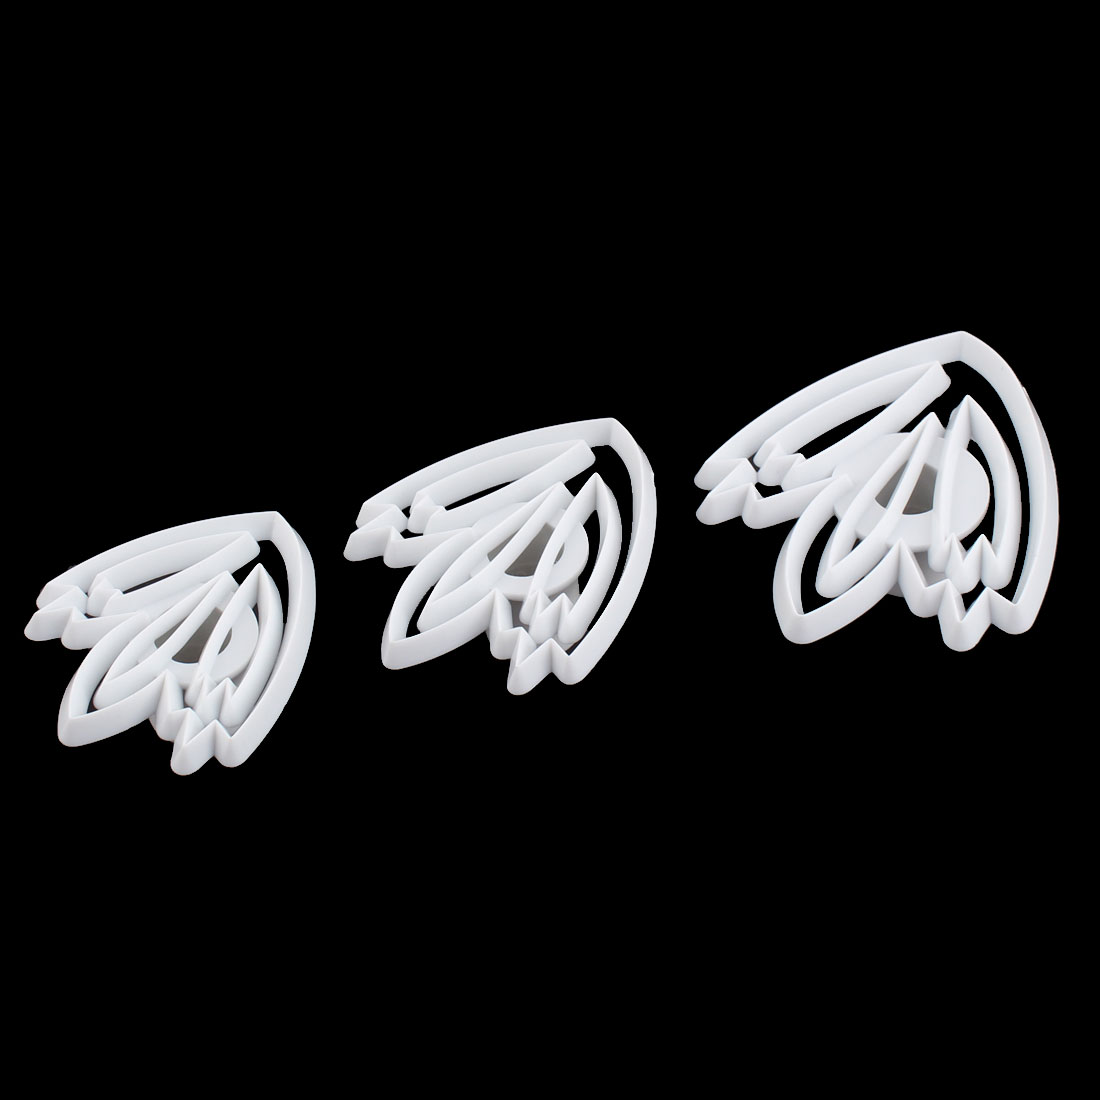 Tulip Flower Shape DIY Cake Cookies Decorating Cutter Plastic Baking Molds Embossing Tool 3 in 1